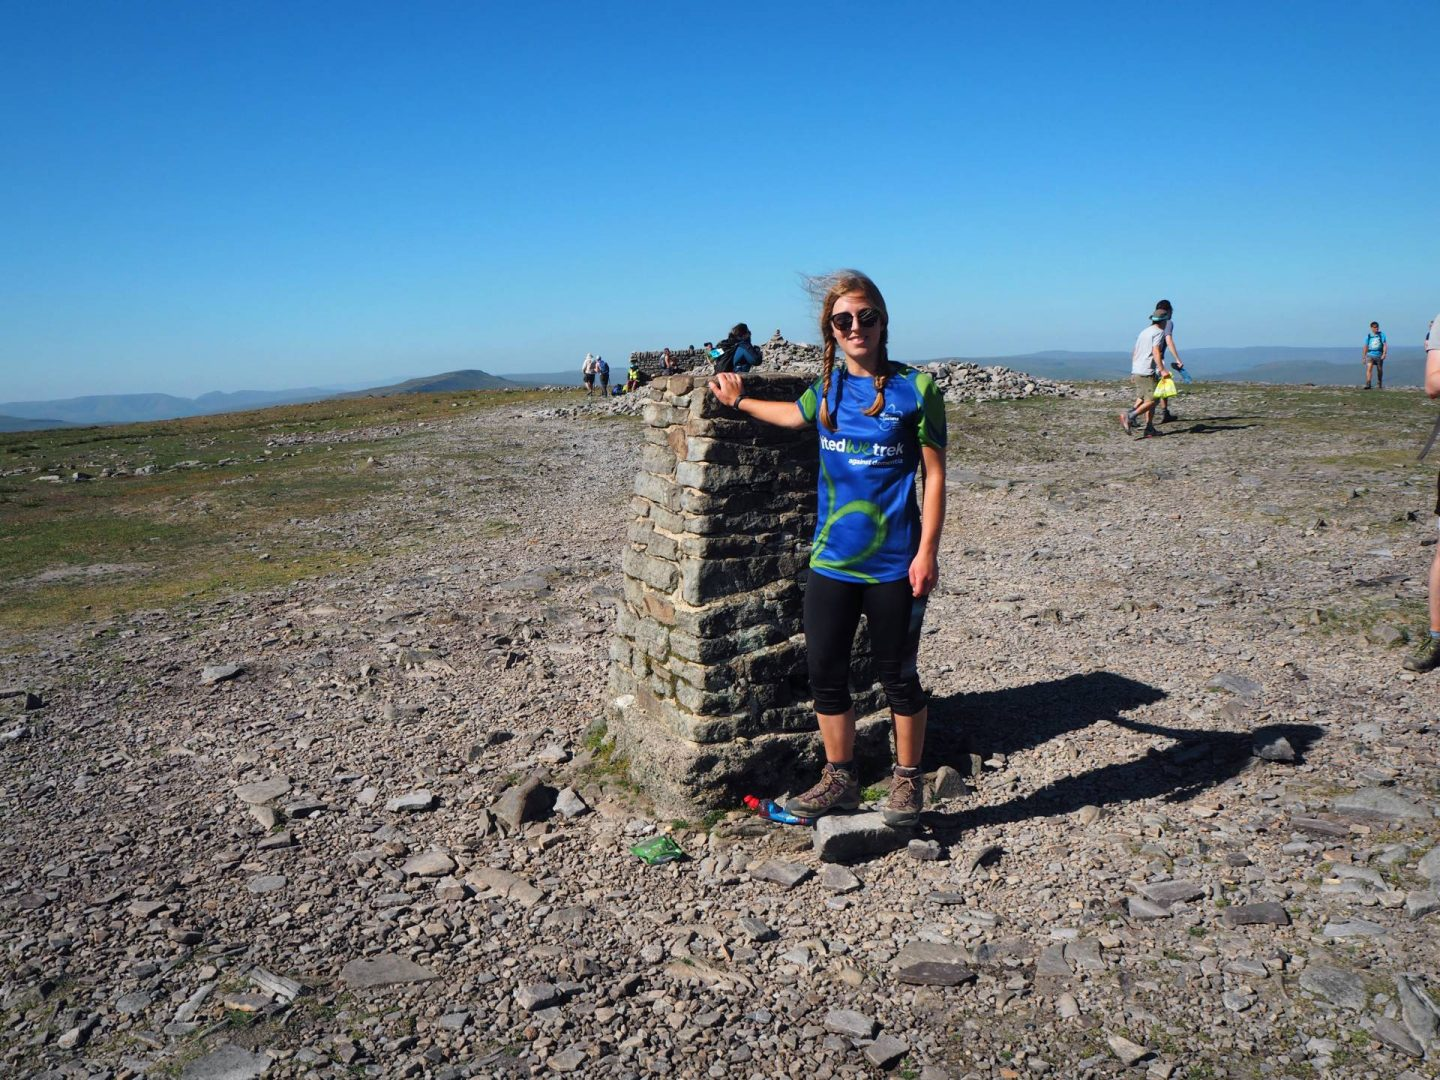 Standing at the summit of Ingleborough in the Yorkshire Dales